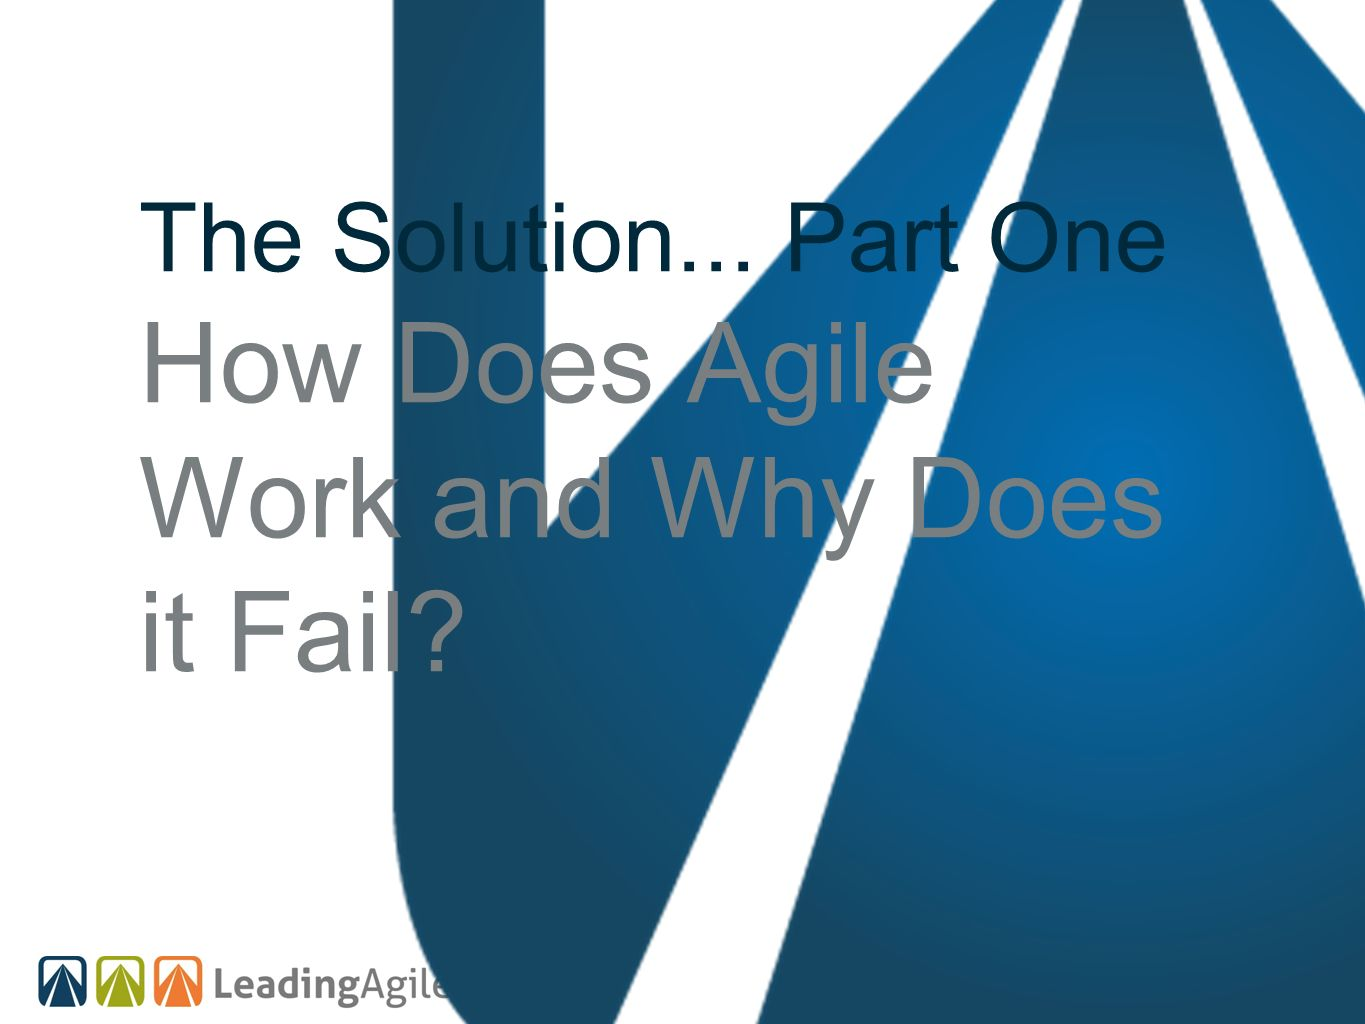 The Solution... Part One How Does Agile Work and Why Does it Fail?